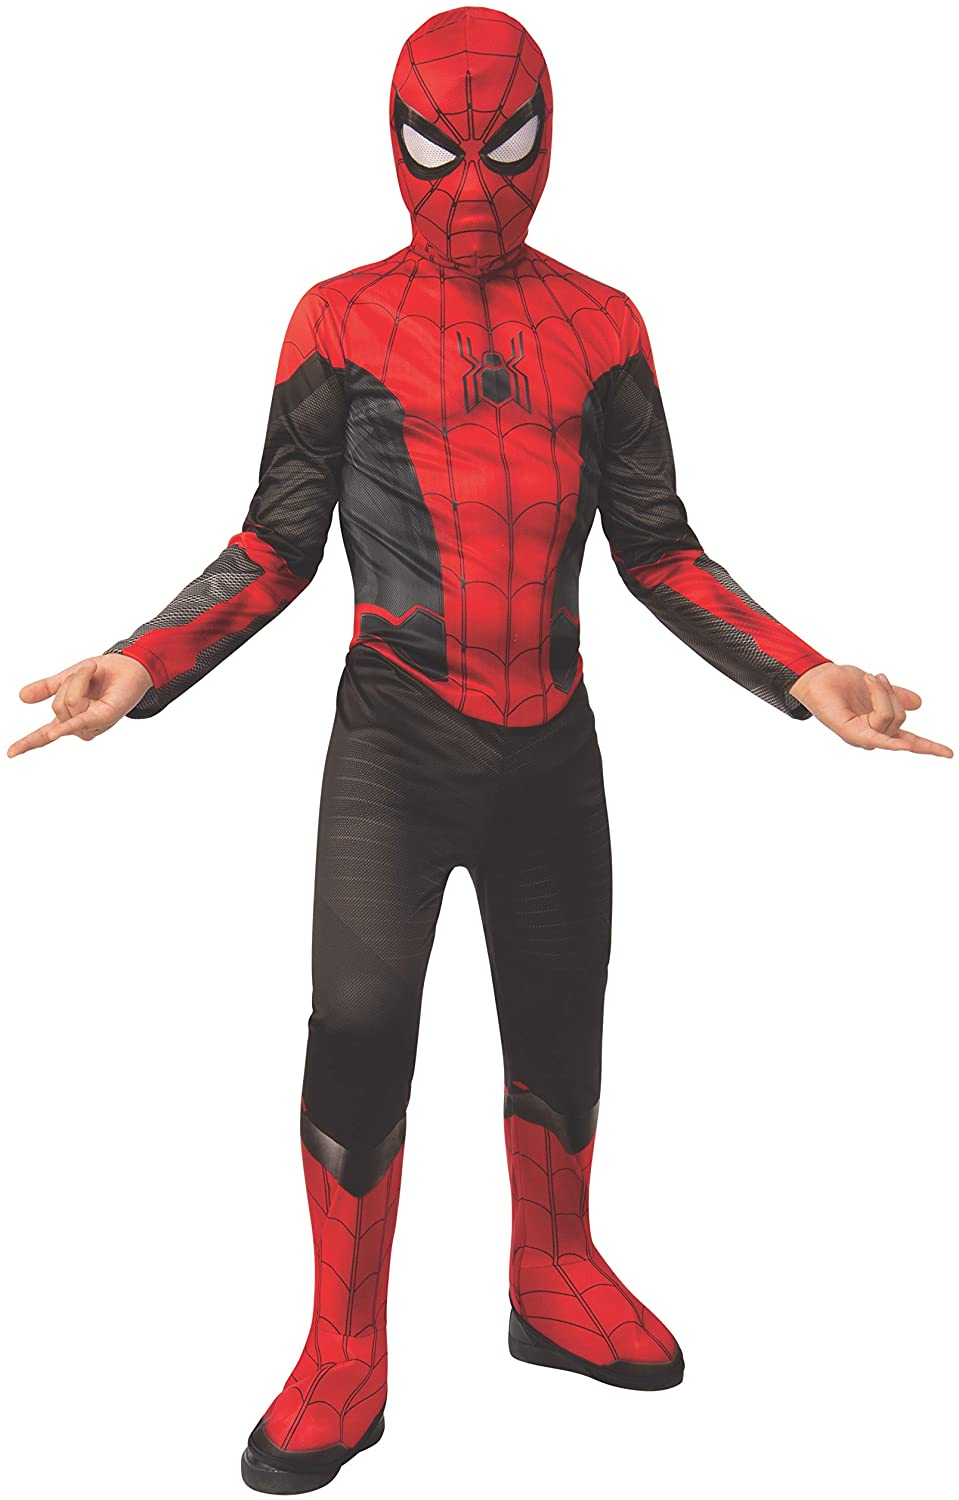 Spider-Man Far from Home: Spider-Man Kids (Red/Black Suit) Costume